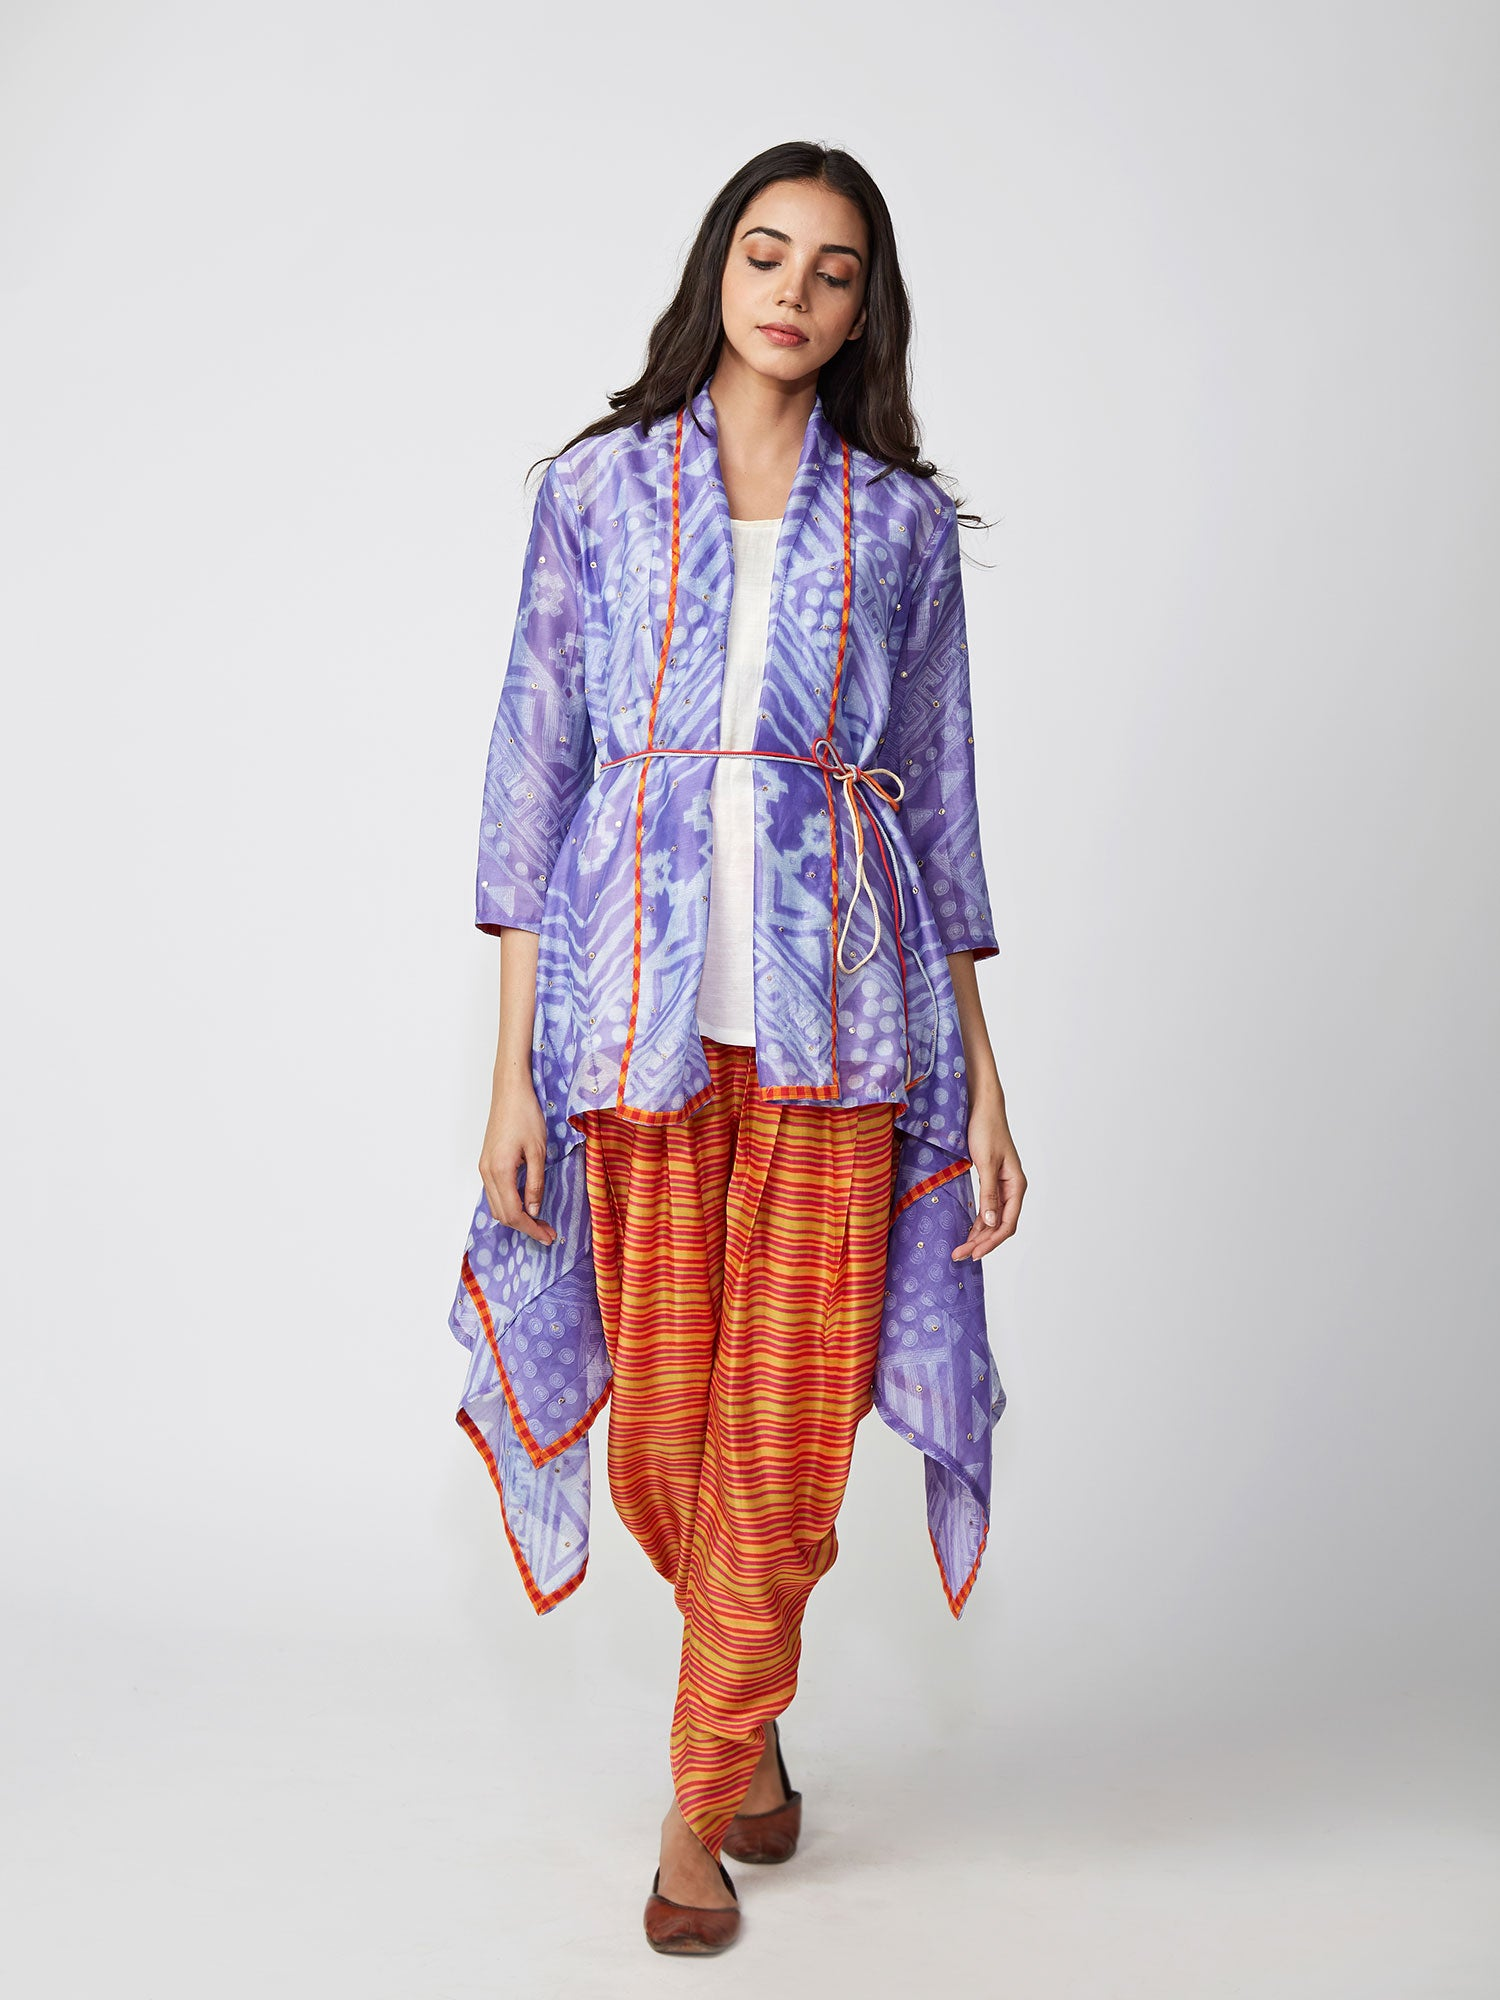 shiboridyed, prints, violet, dhotipants, capes, jackets, chander, gota, indiancontemporary, swativijaivargie